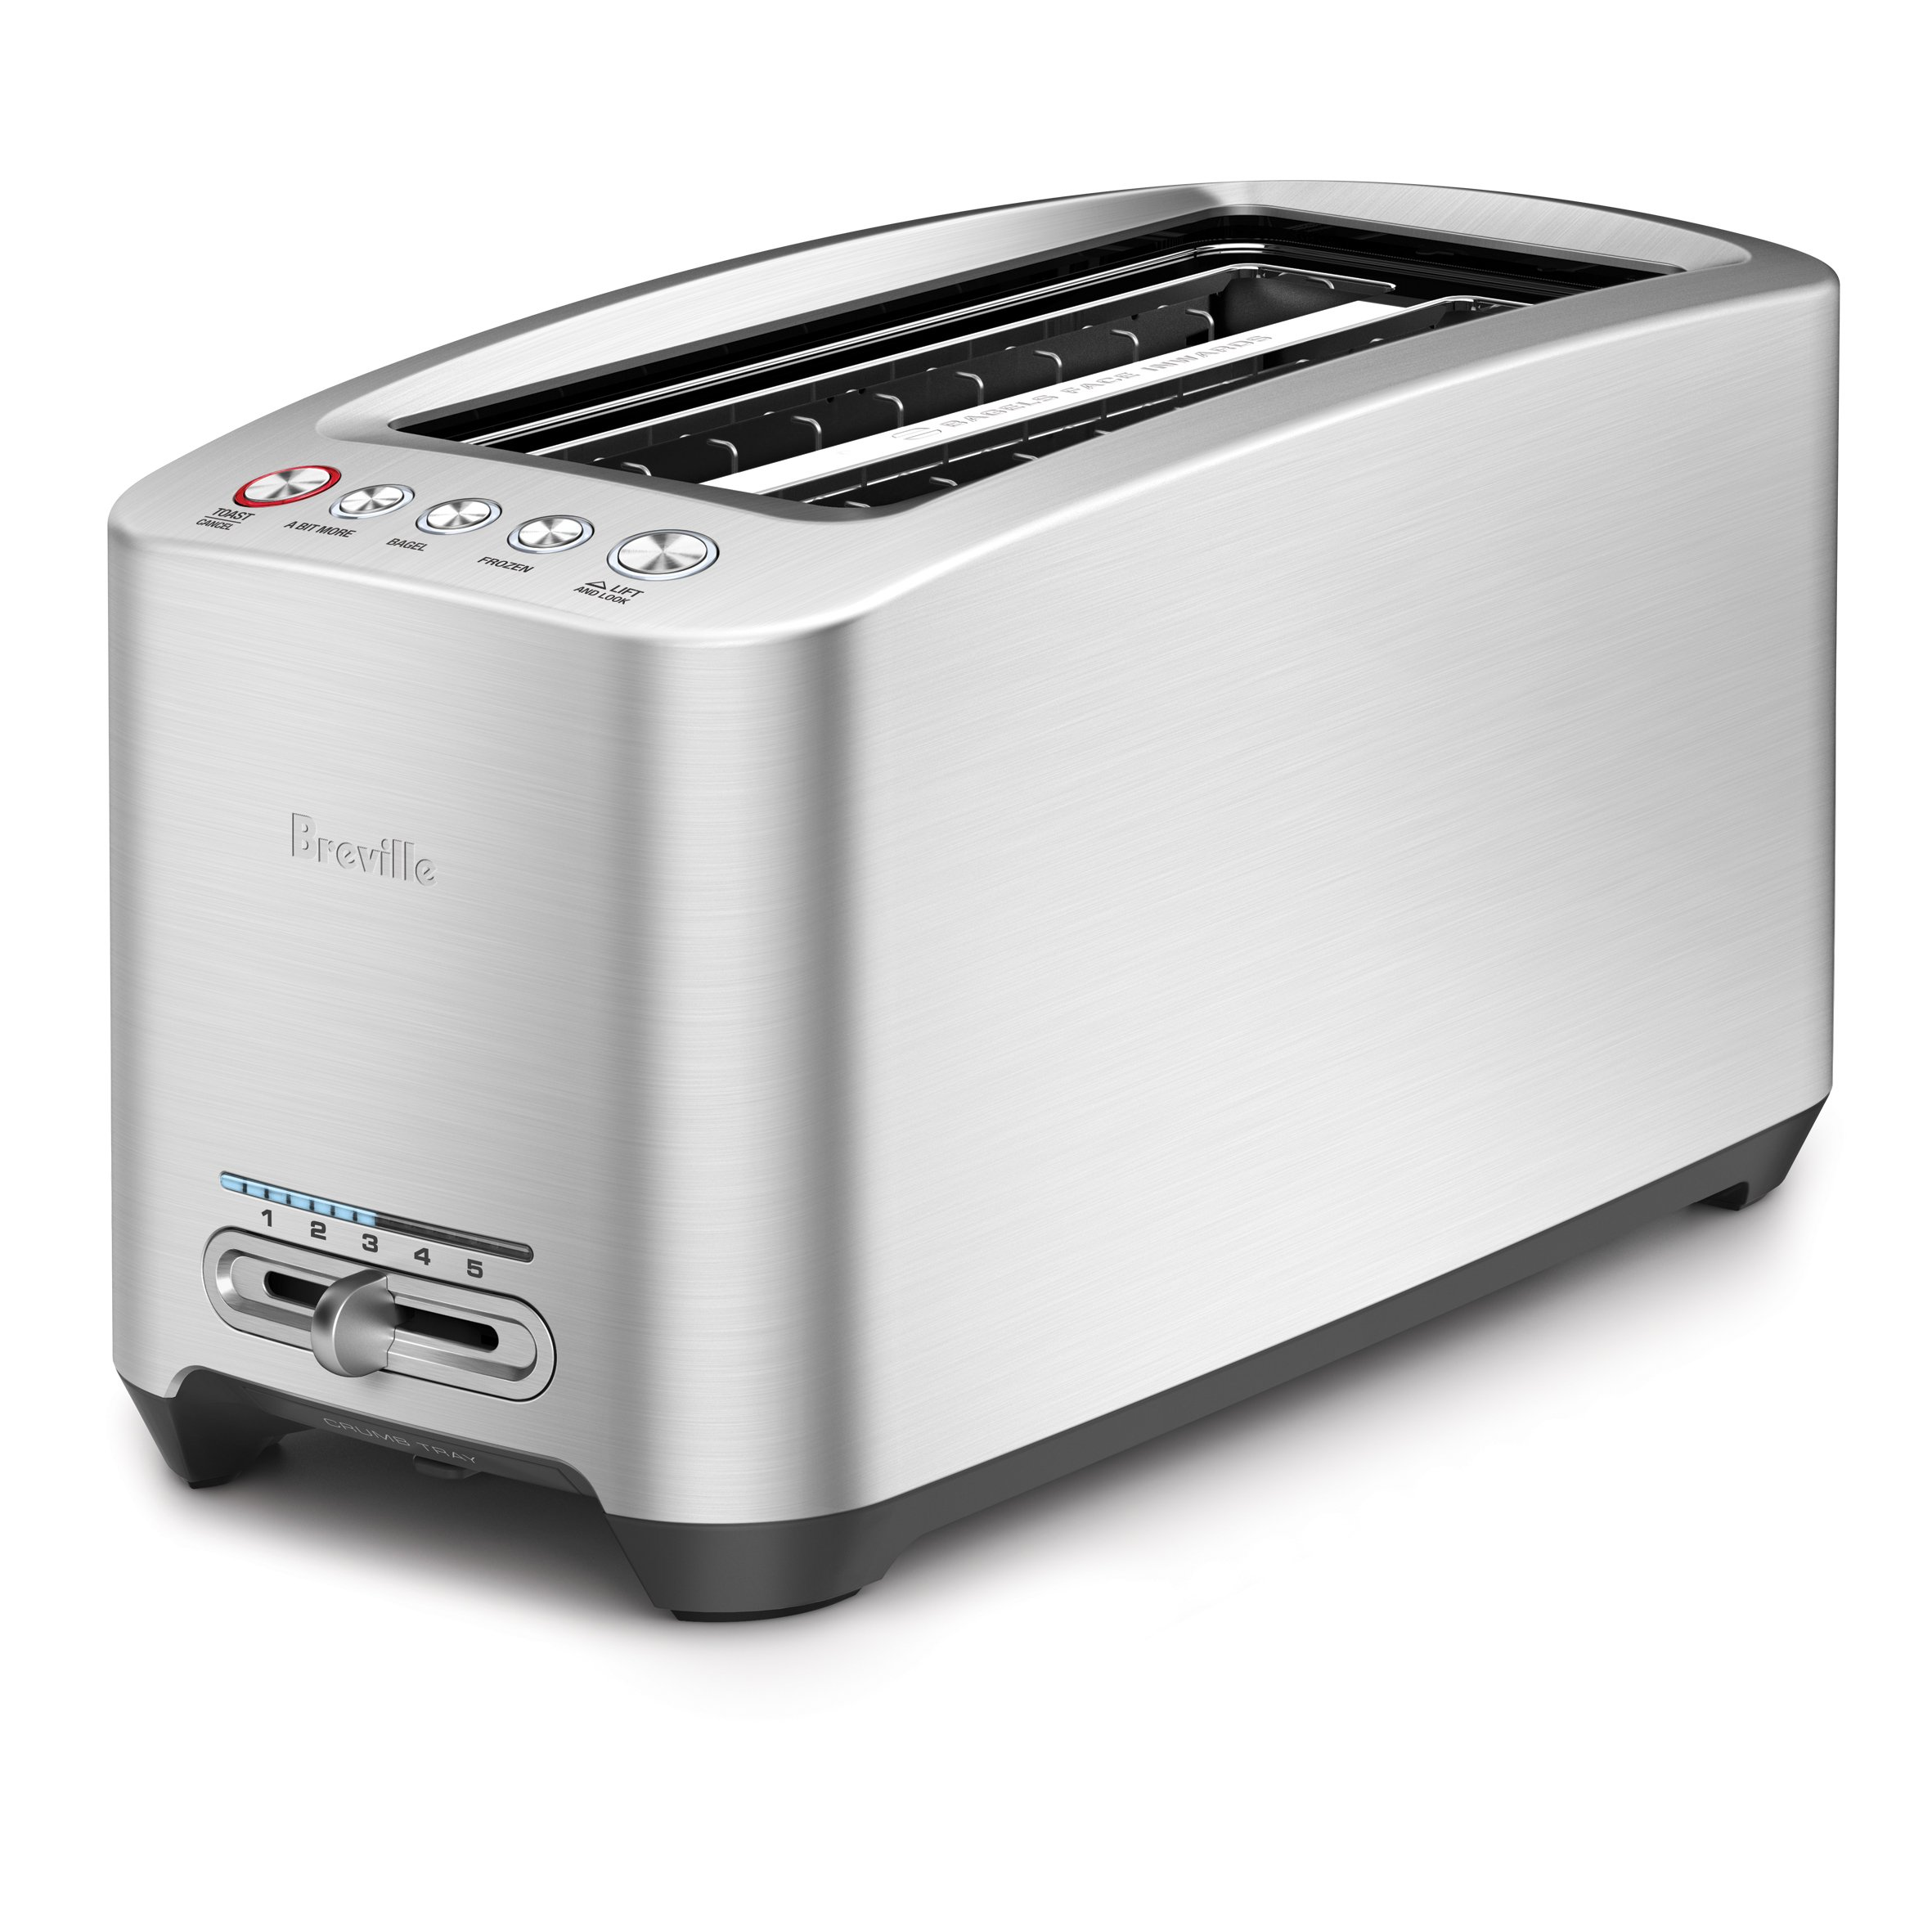 Breville BTA830XL Smart Toaster, Stainless Steel by Breville